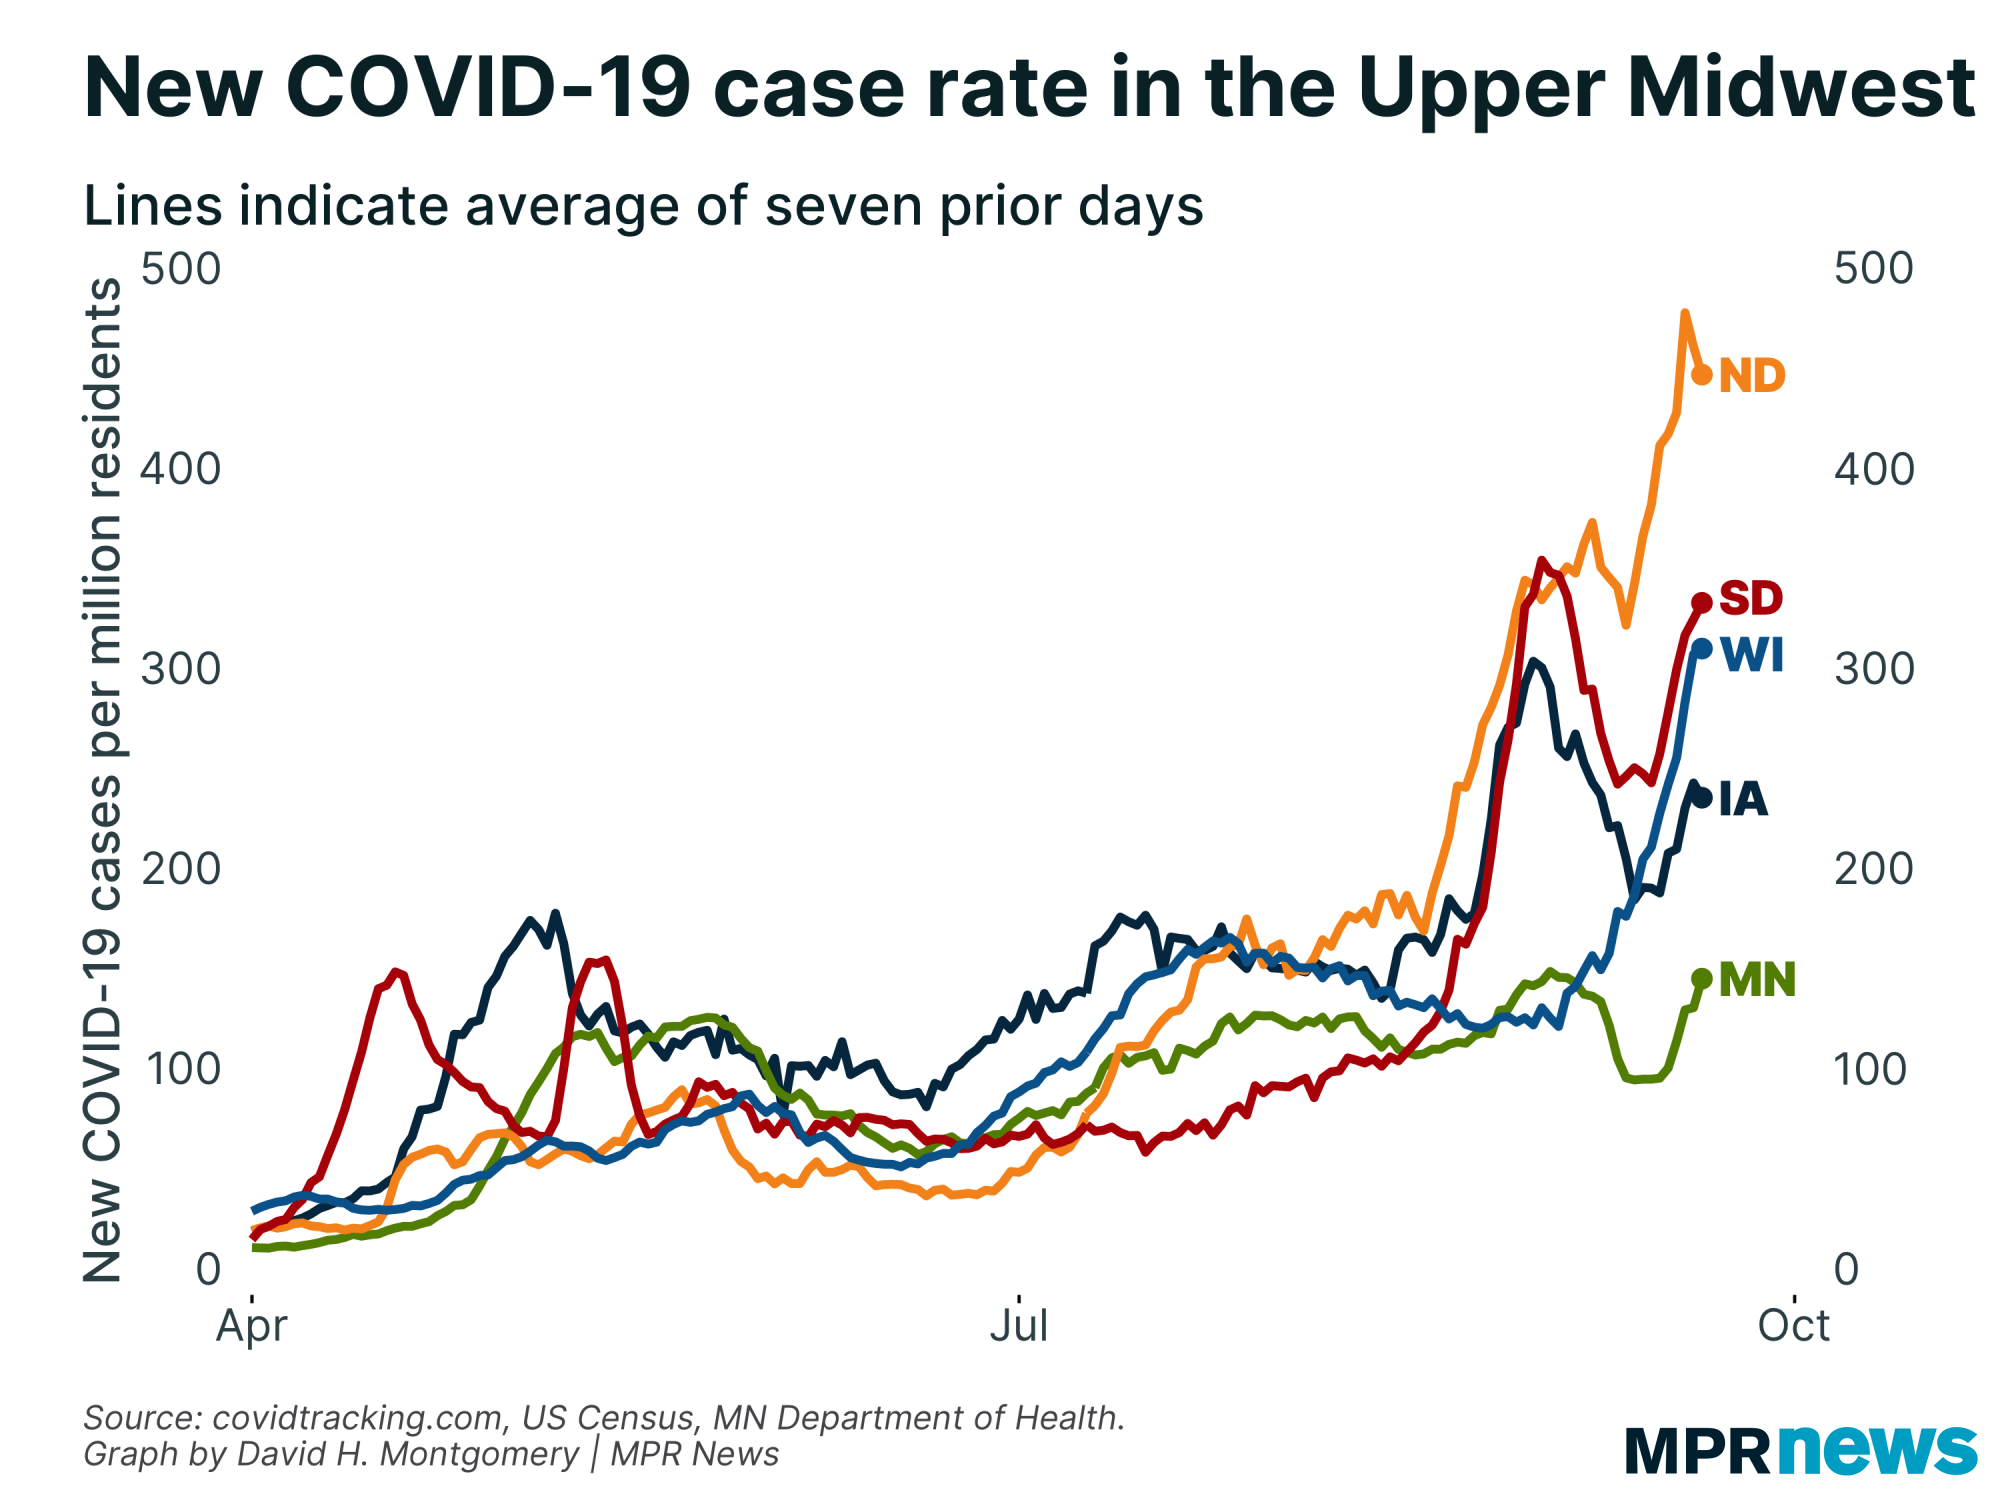 New COVID-19 cases per capita in the Upper Midwest